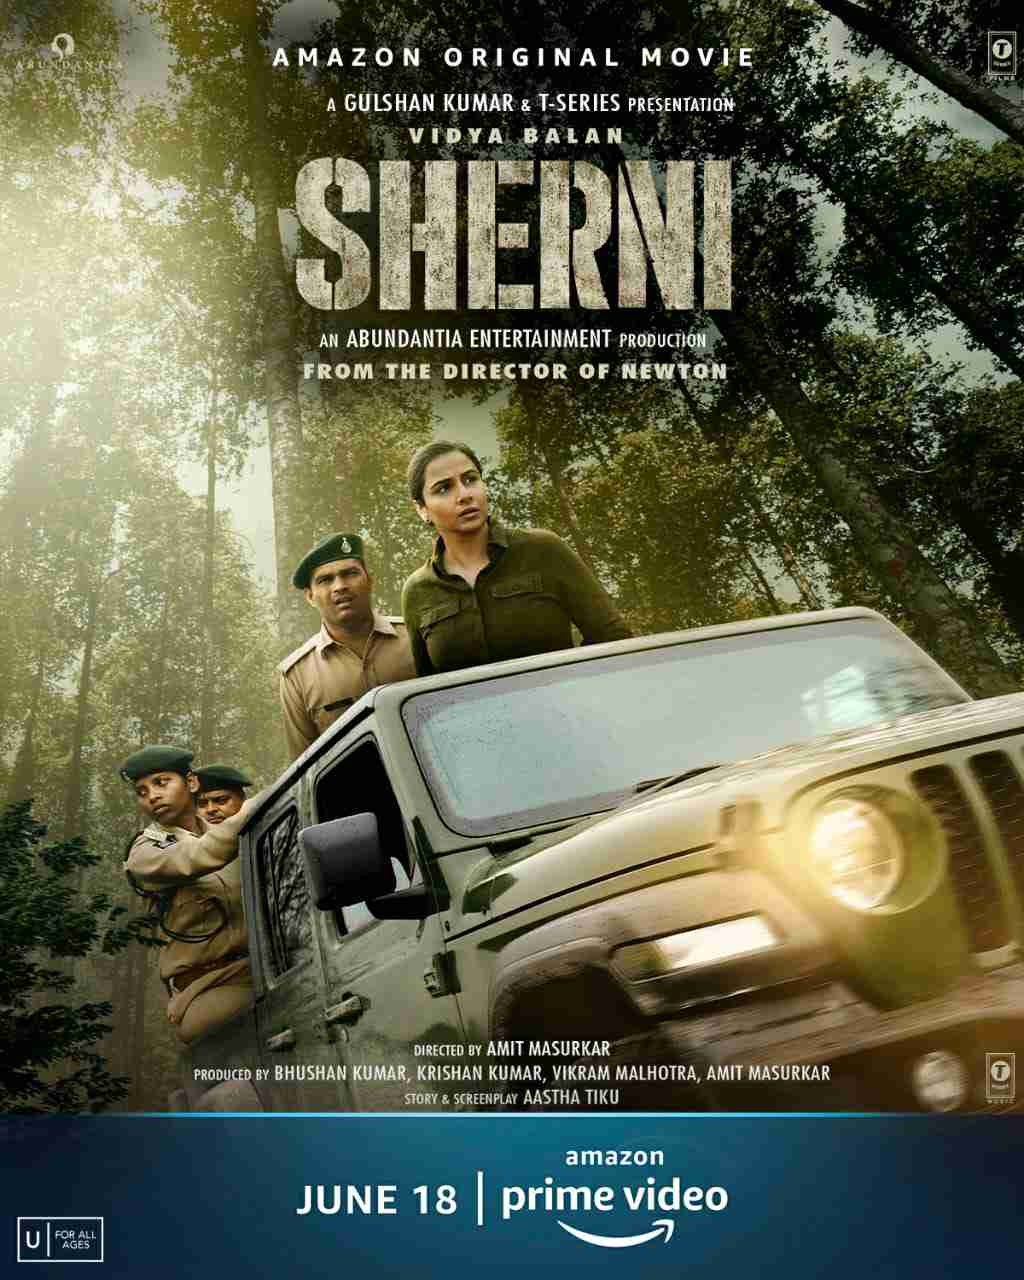 Movie Review of the film Sherni featuring Vidya Balan released on Amazon Prime Video